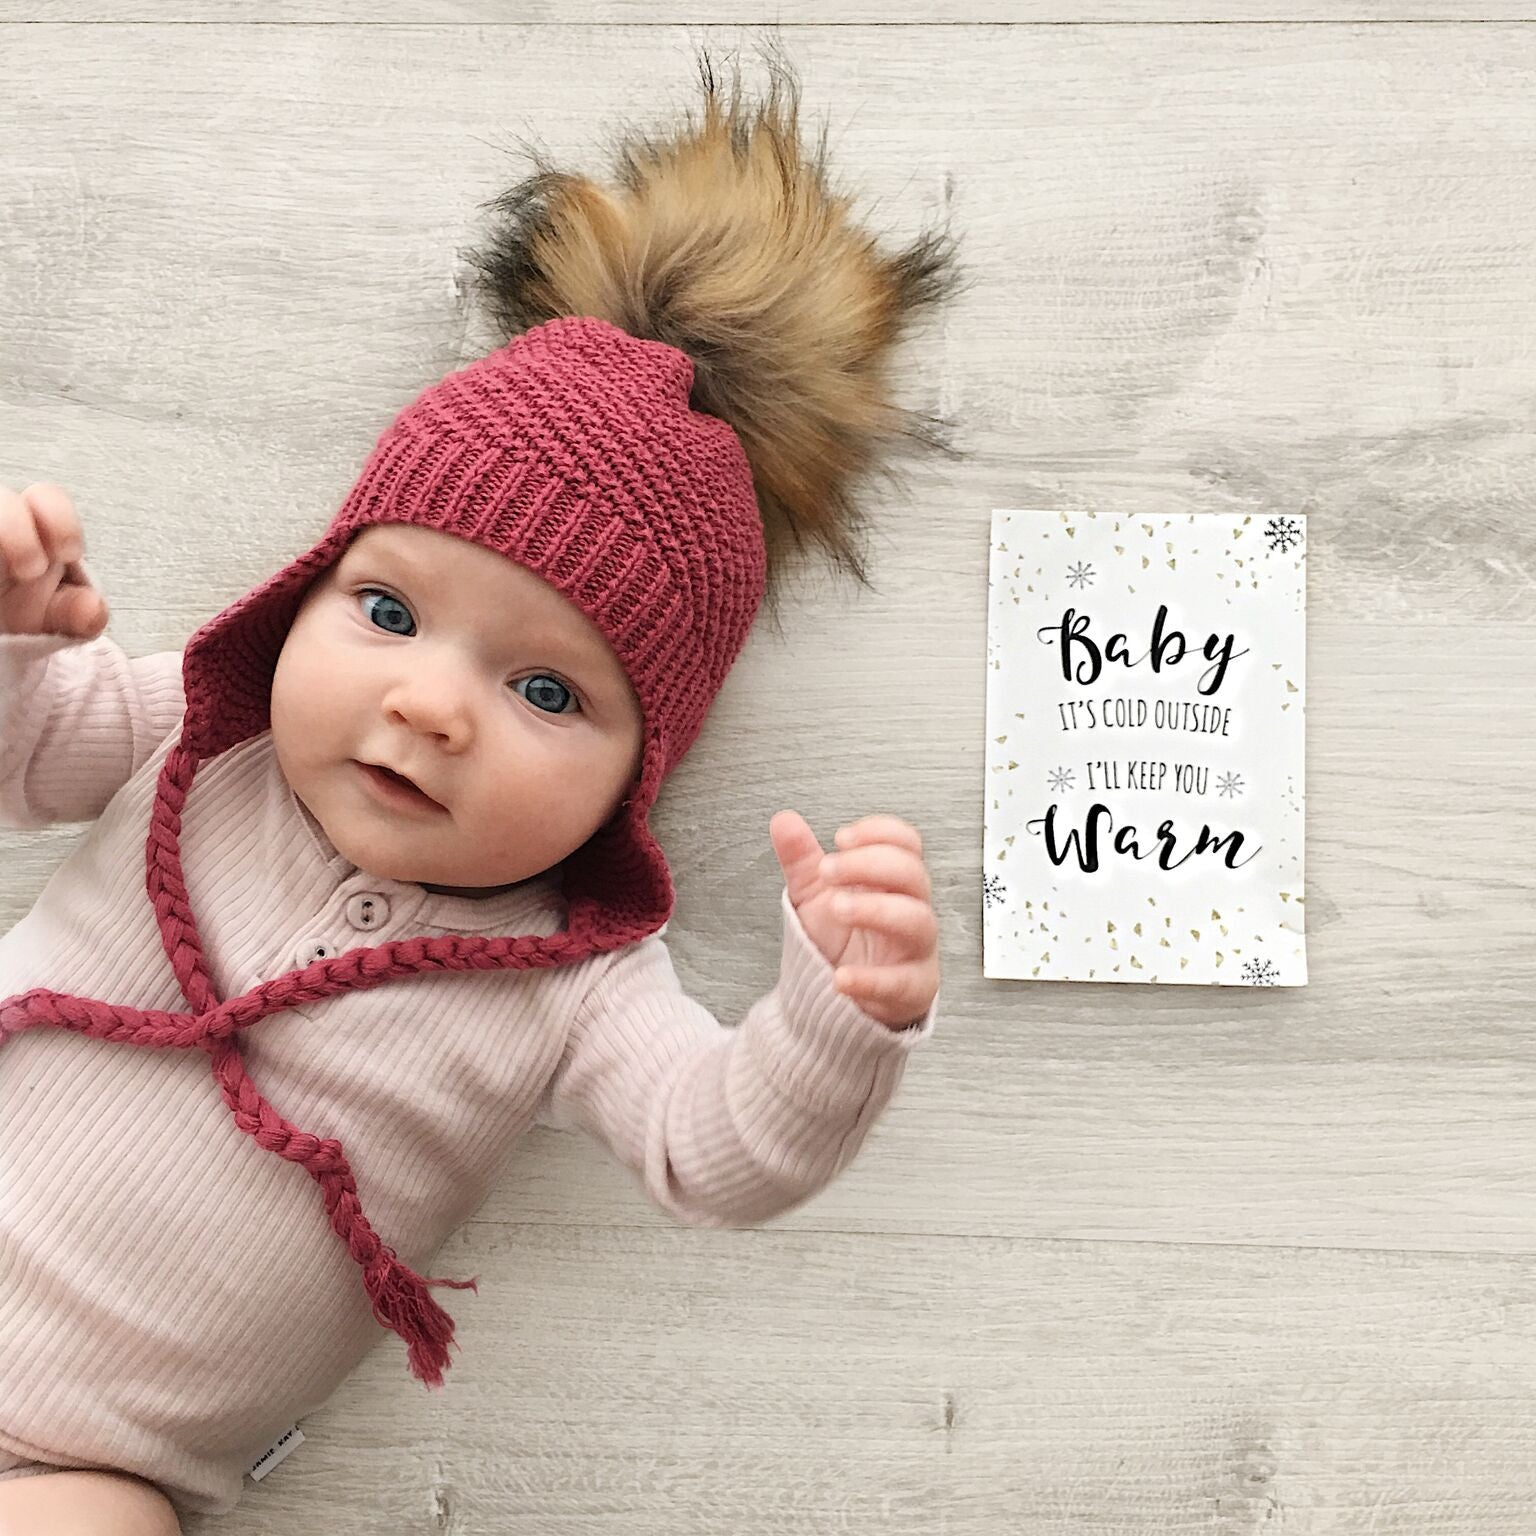 Baby, Toddler & Adult Knit Pom Pom Beanie - Plum in Colour, 100% Australian, Boutique Store